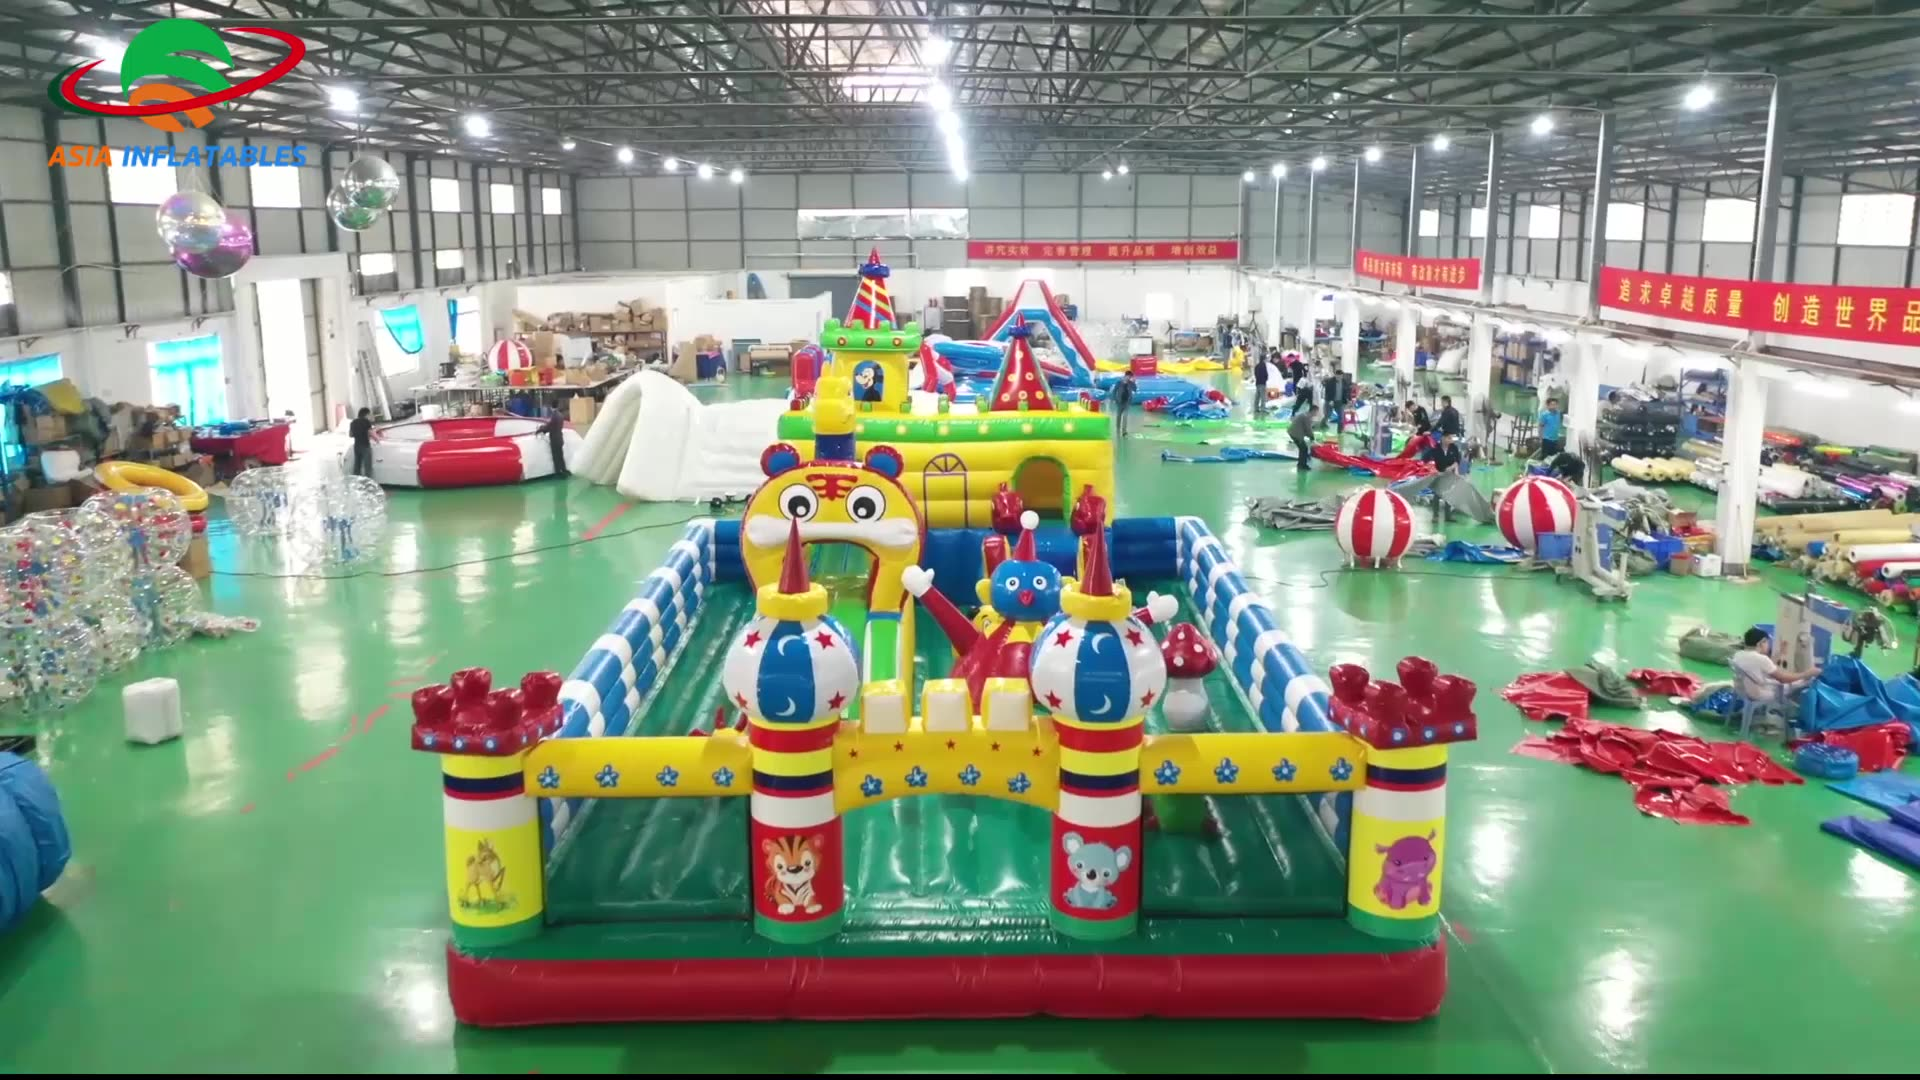 Inflatable Amusement Park / Giant Inflatable Pirates Playground Park